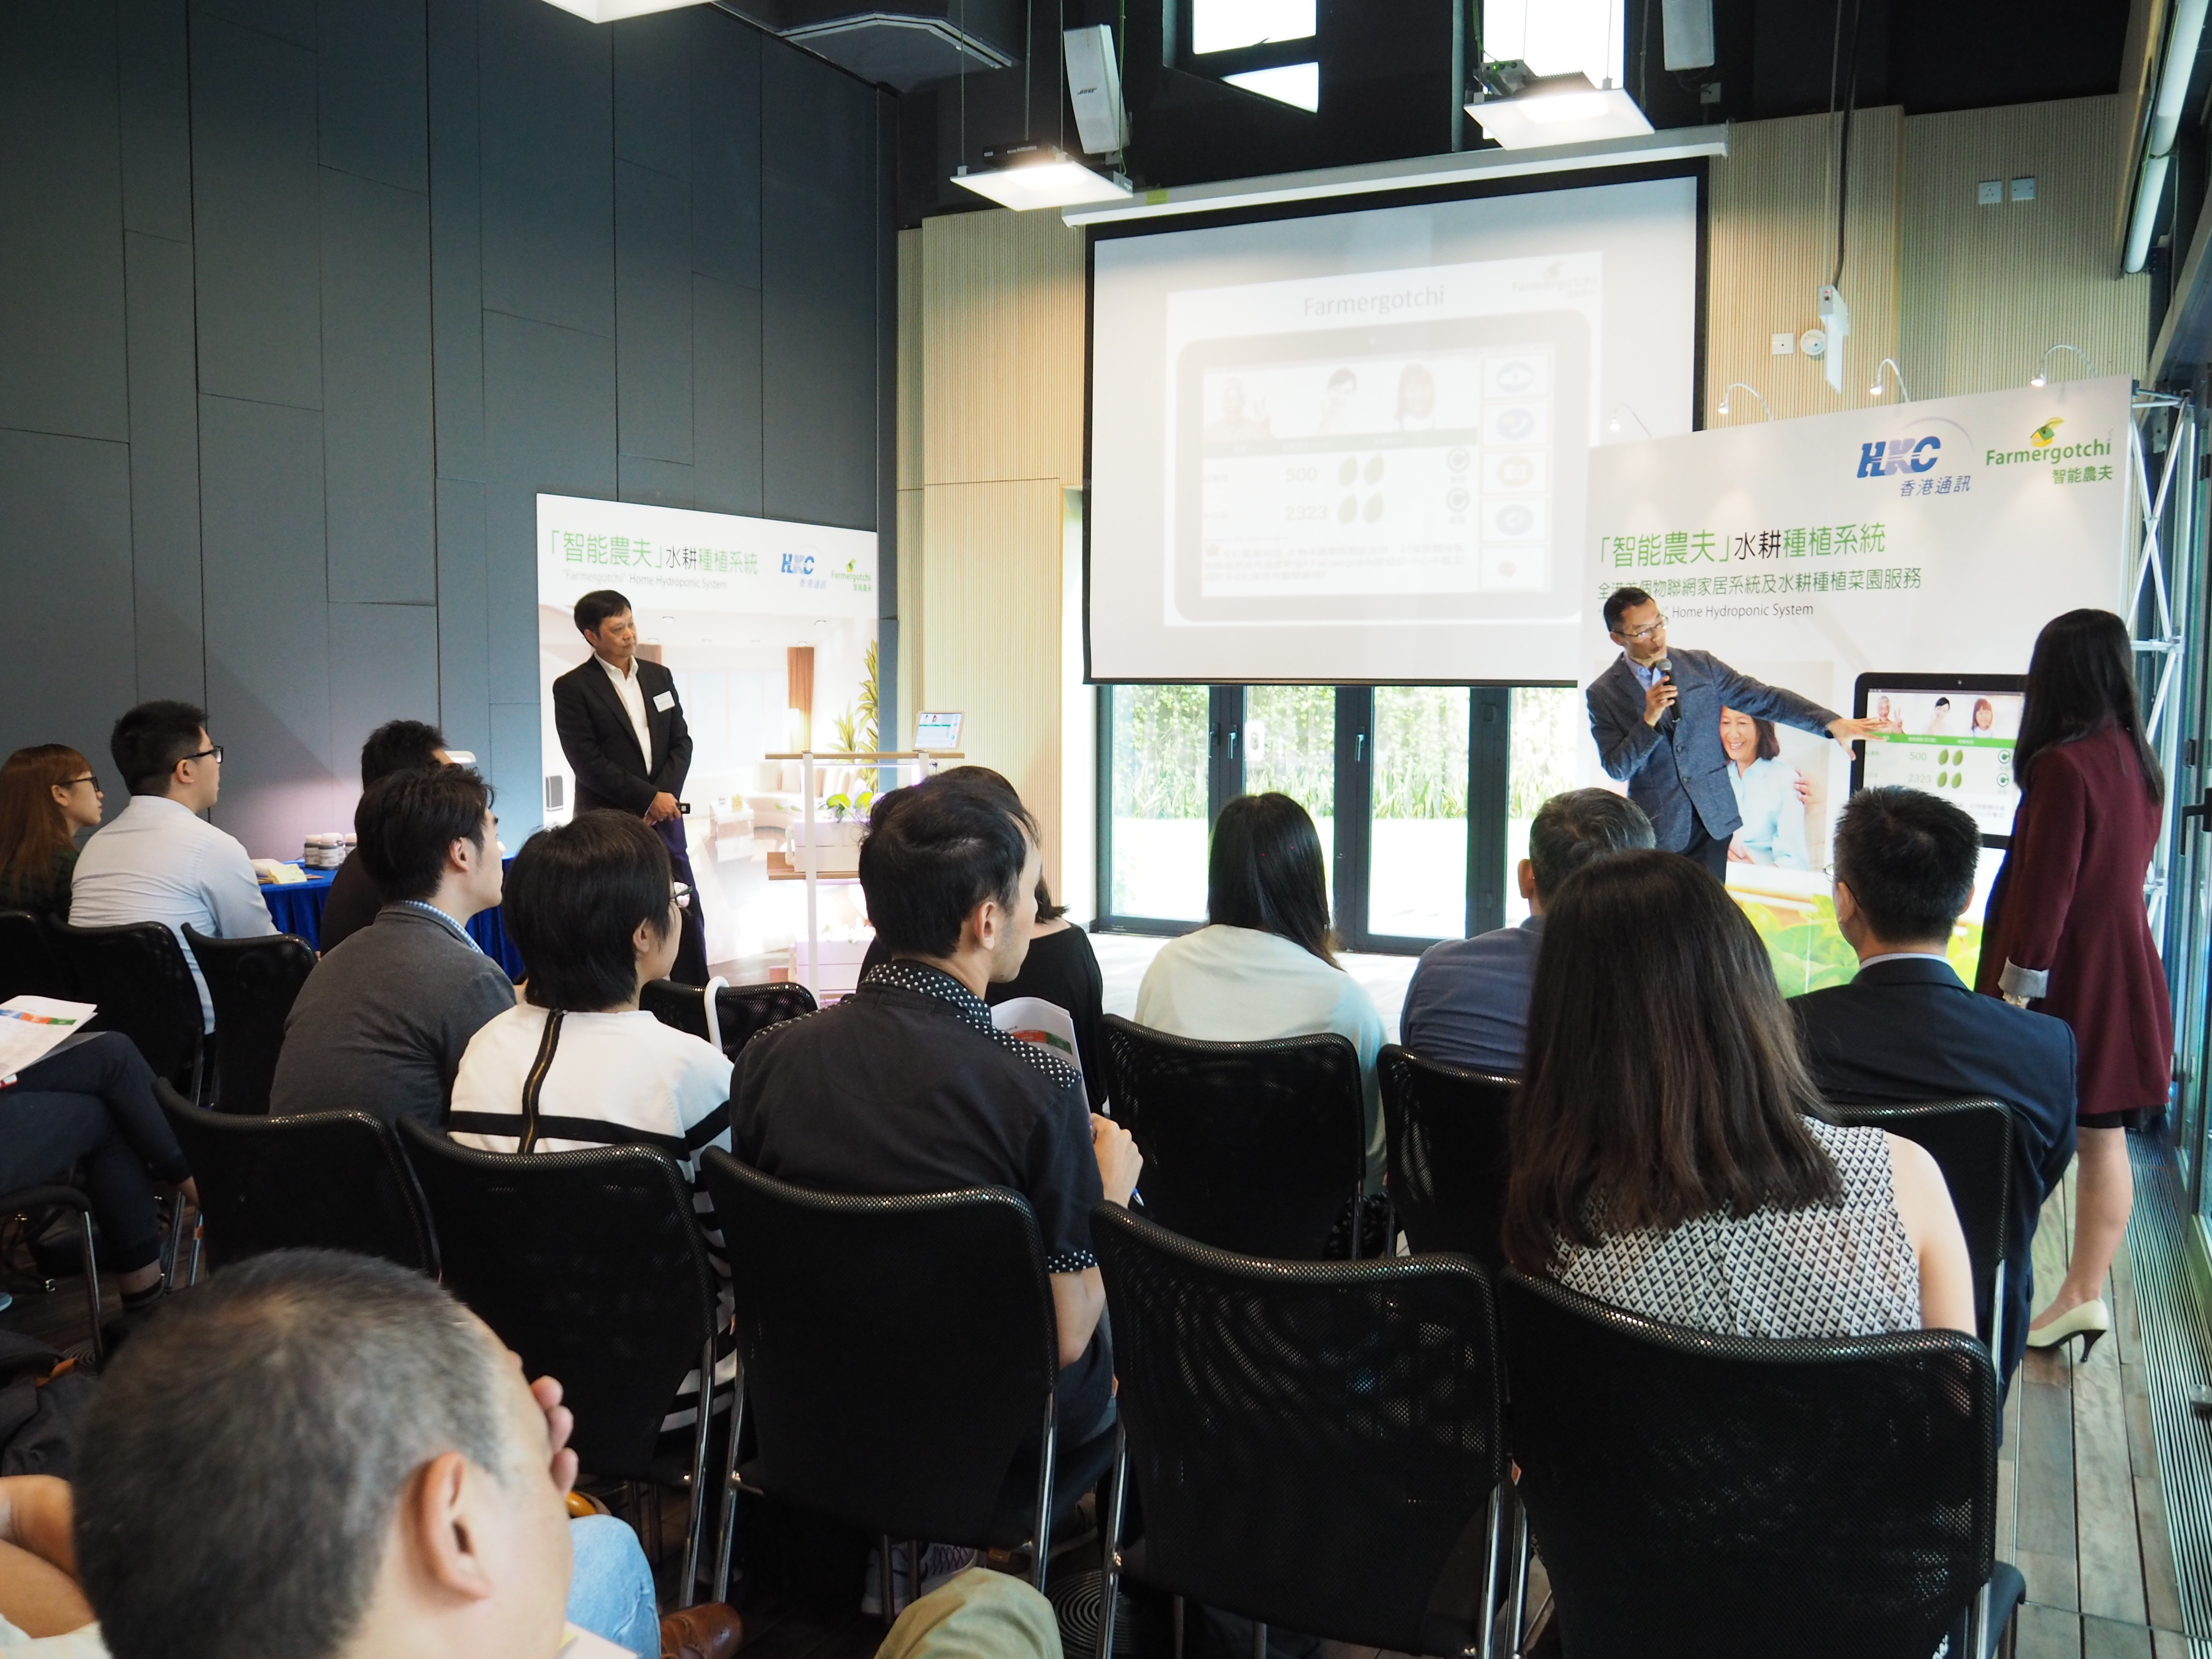 """Hong Kong Communications Launches """"Farmergotchi""""  Home Hydroponic System (6 September 2016)"""